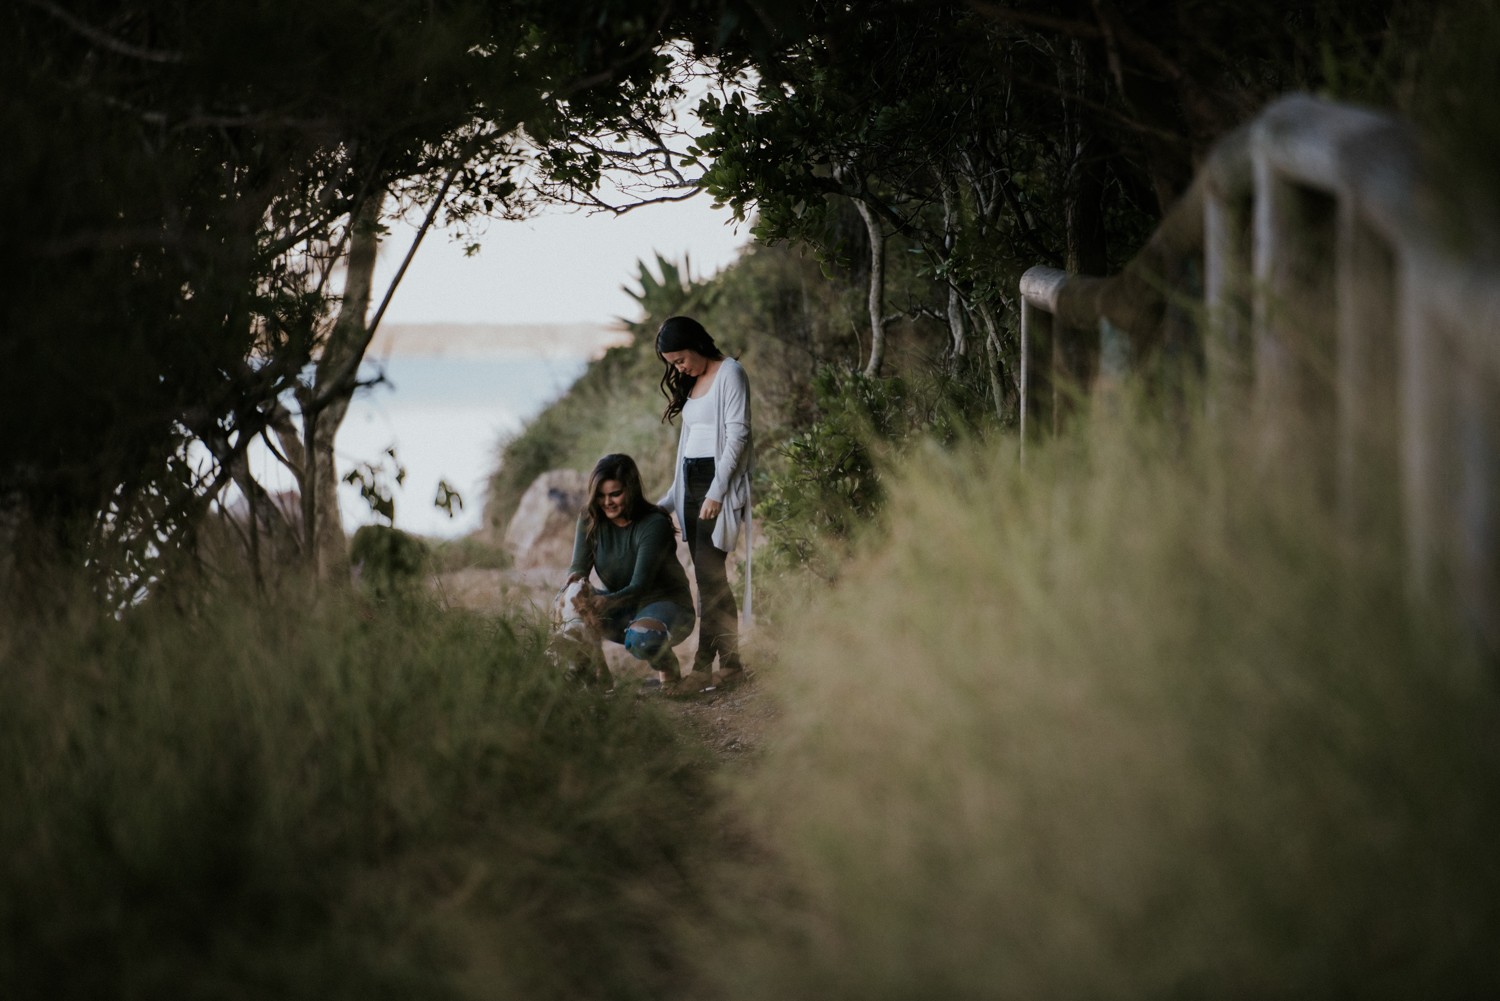 Brisbane Lesbian Wedding Photographer | Same-Sex Engagement-Elopement Photography-8.jpg